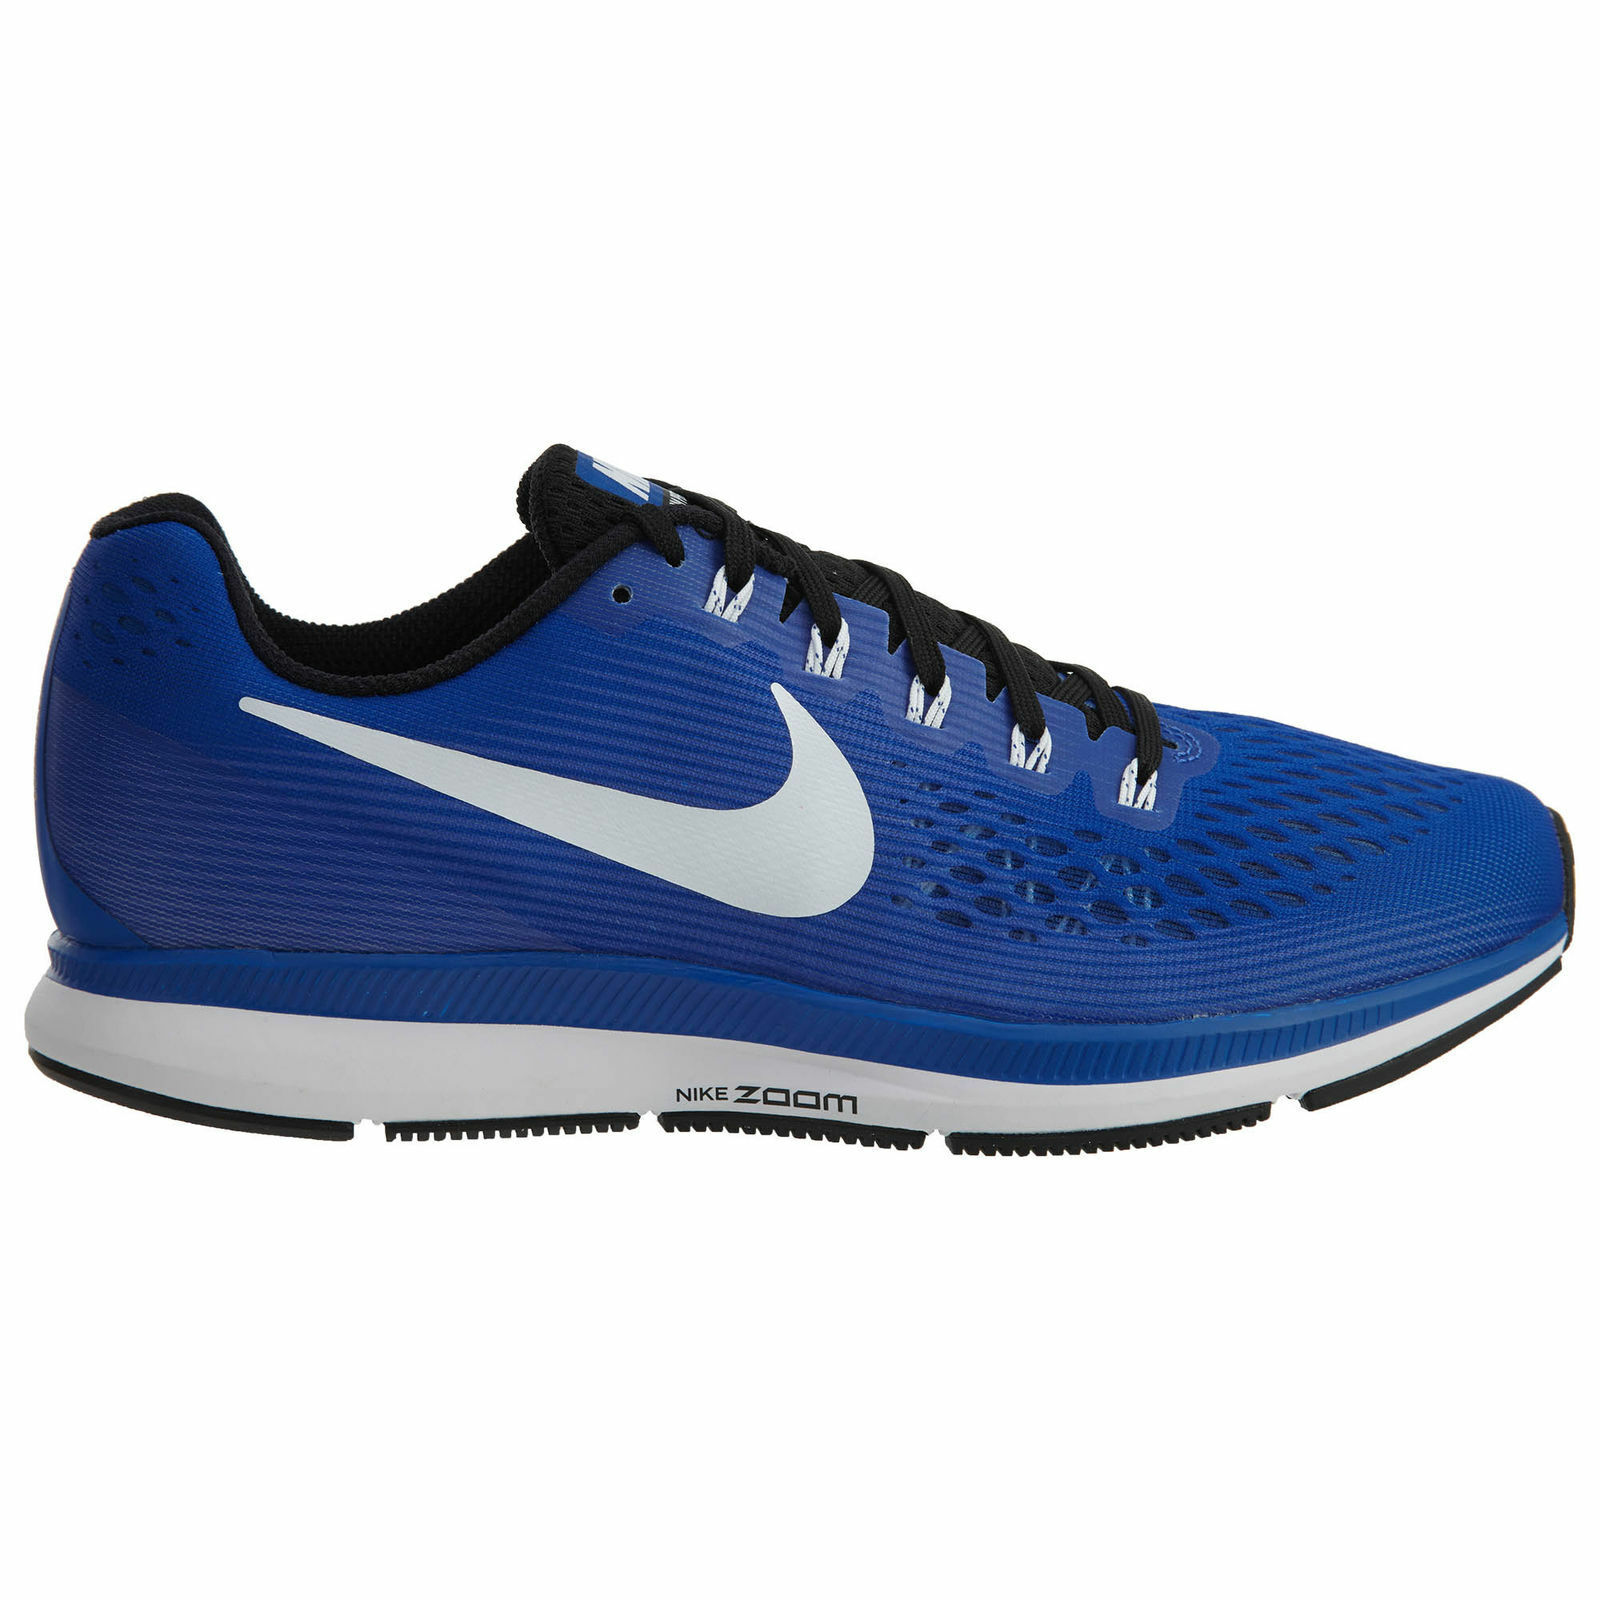 Mns Nike Air Zoom Pegasus 34 TB Sz 7-9 Game Royal White 887009-402 FREE SHIPPING